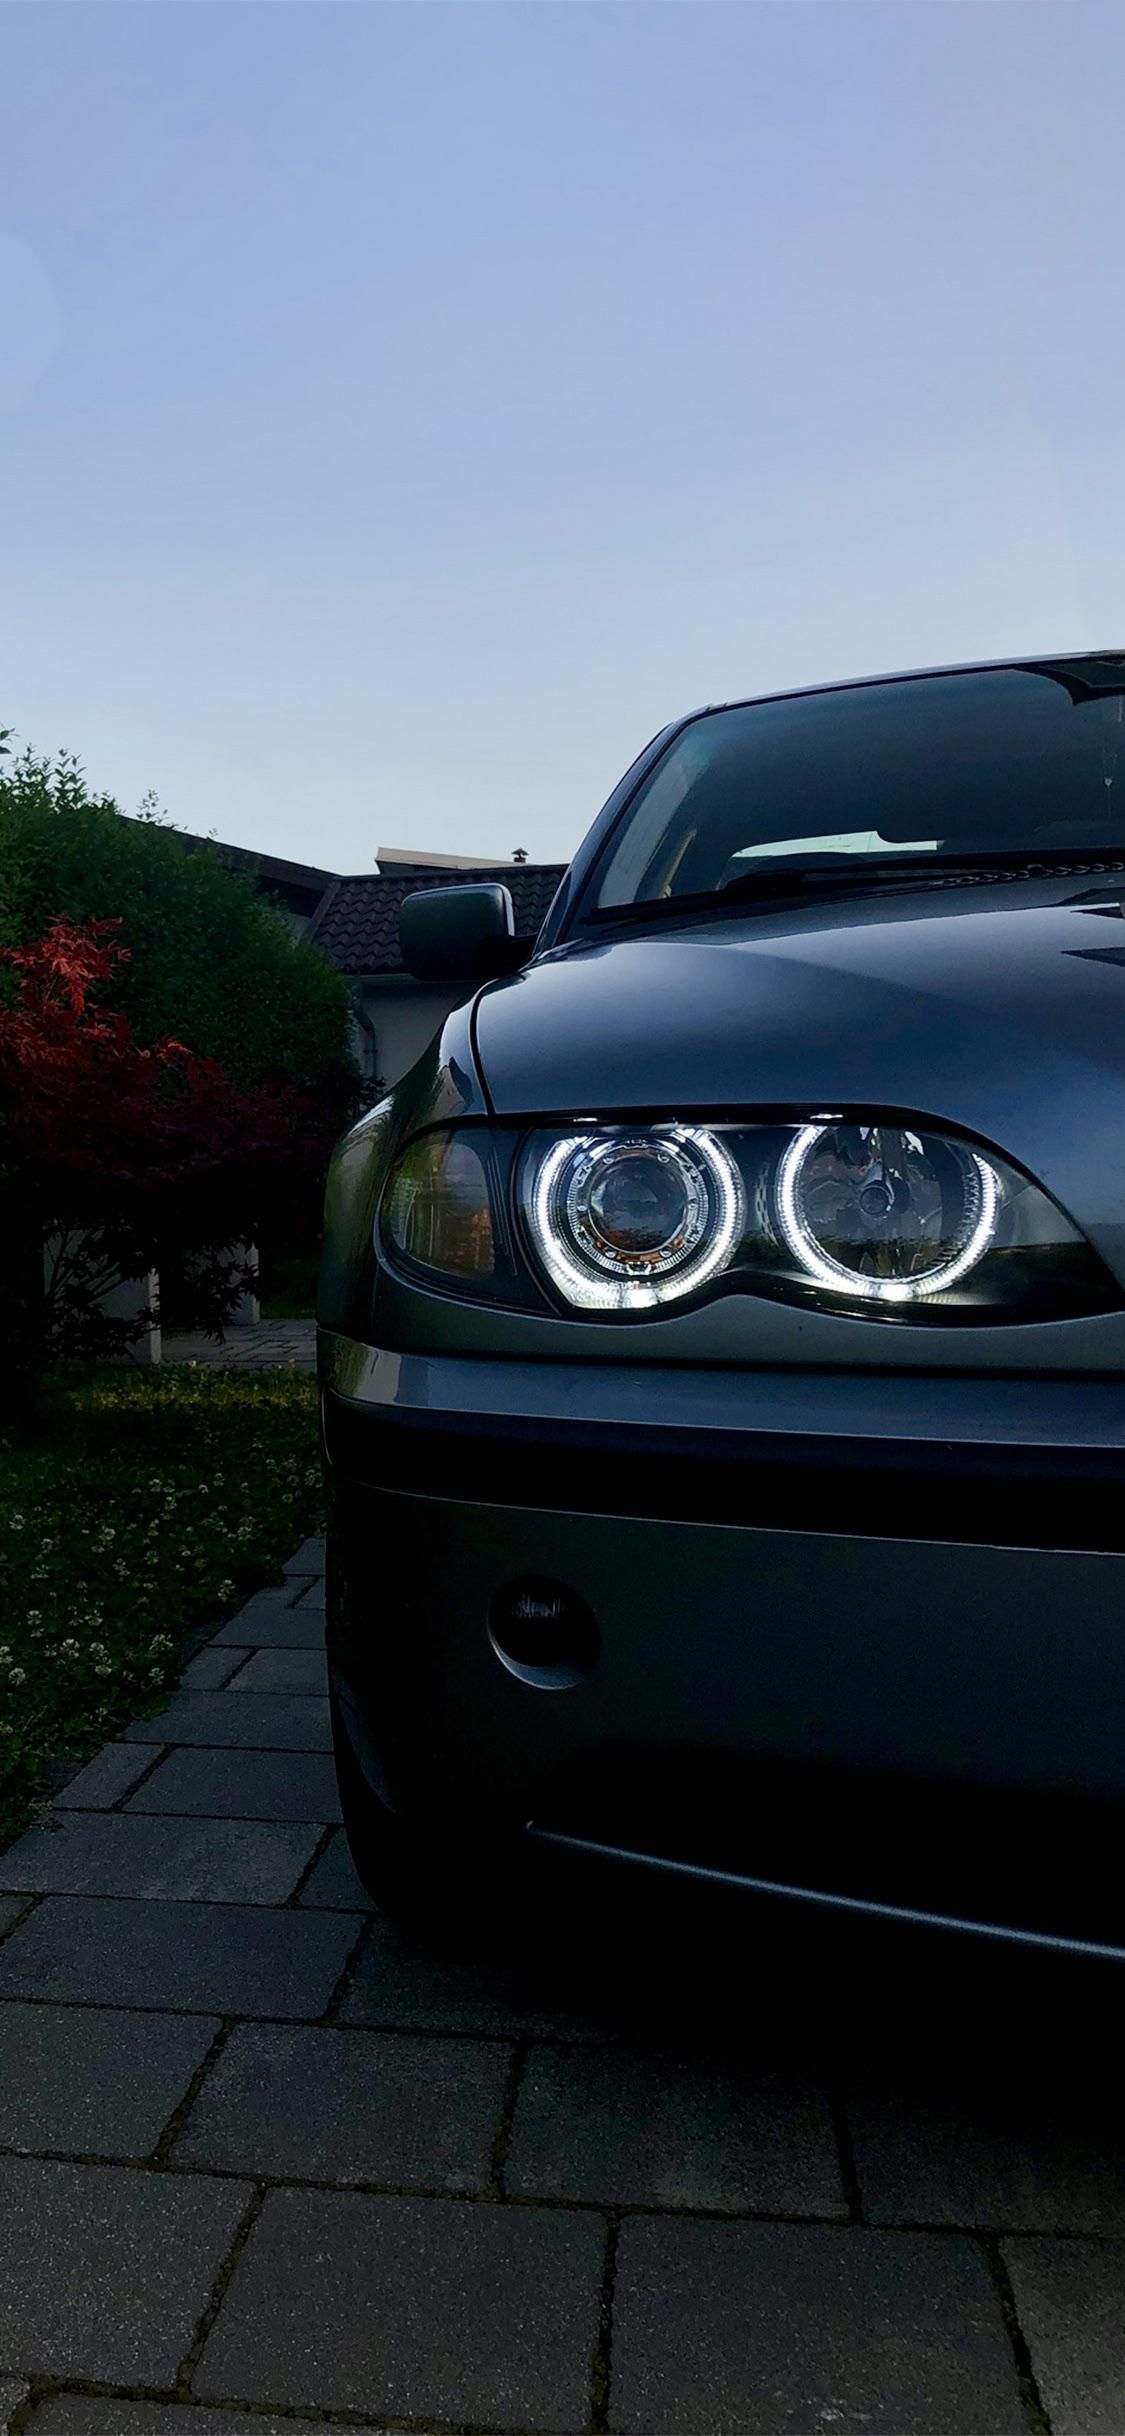 Just A Phone Wallpaper That I Shot Of My E46 Got The Angel Eyes